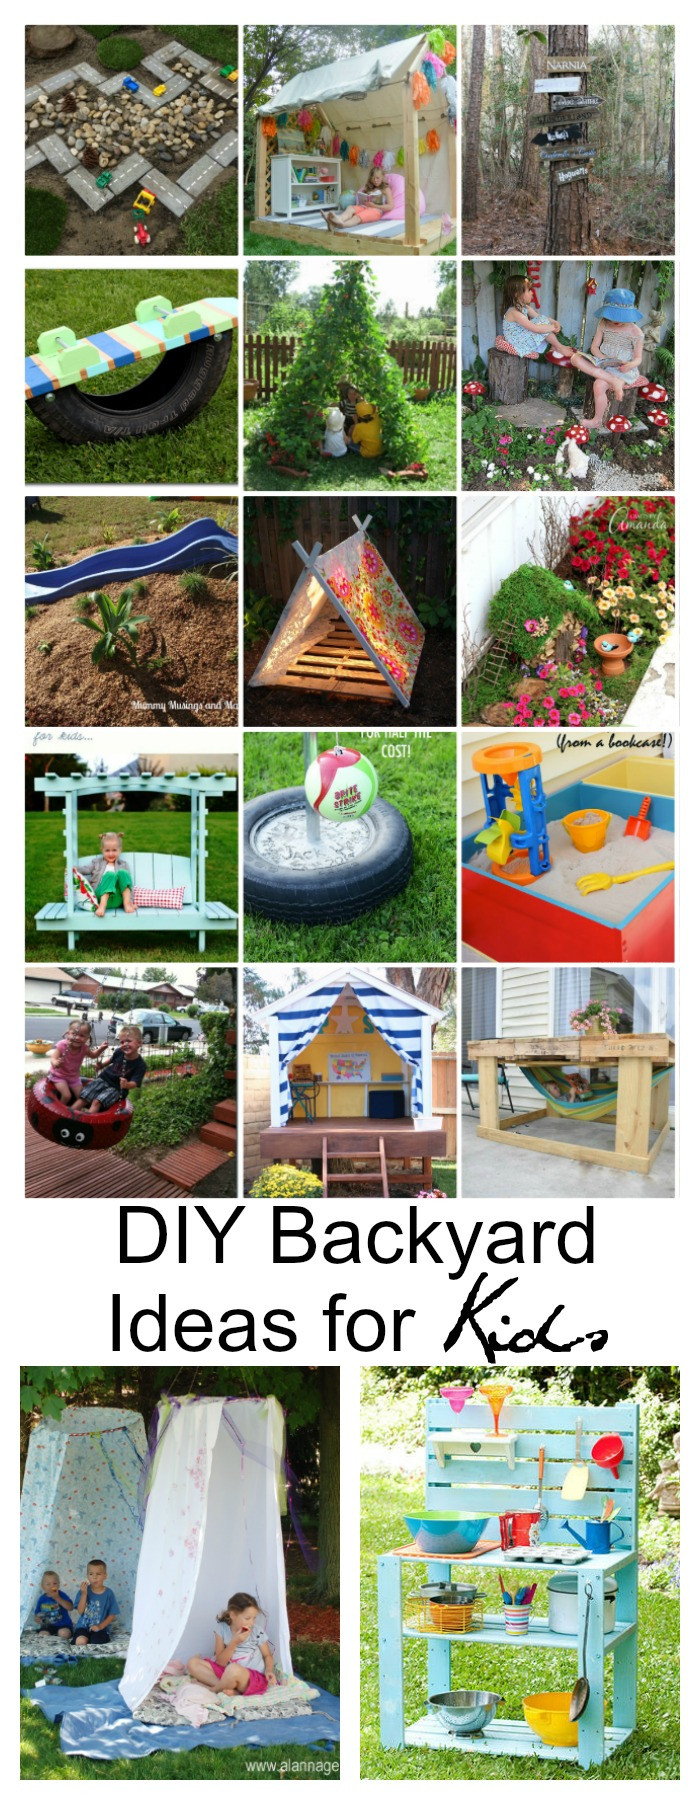 Best ideas about Ideas For Kids . Save or Pin DIY Backyard Ideas for Kids The Idea Room Now.